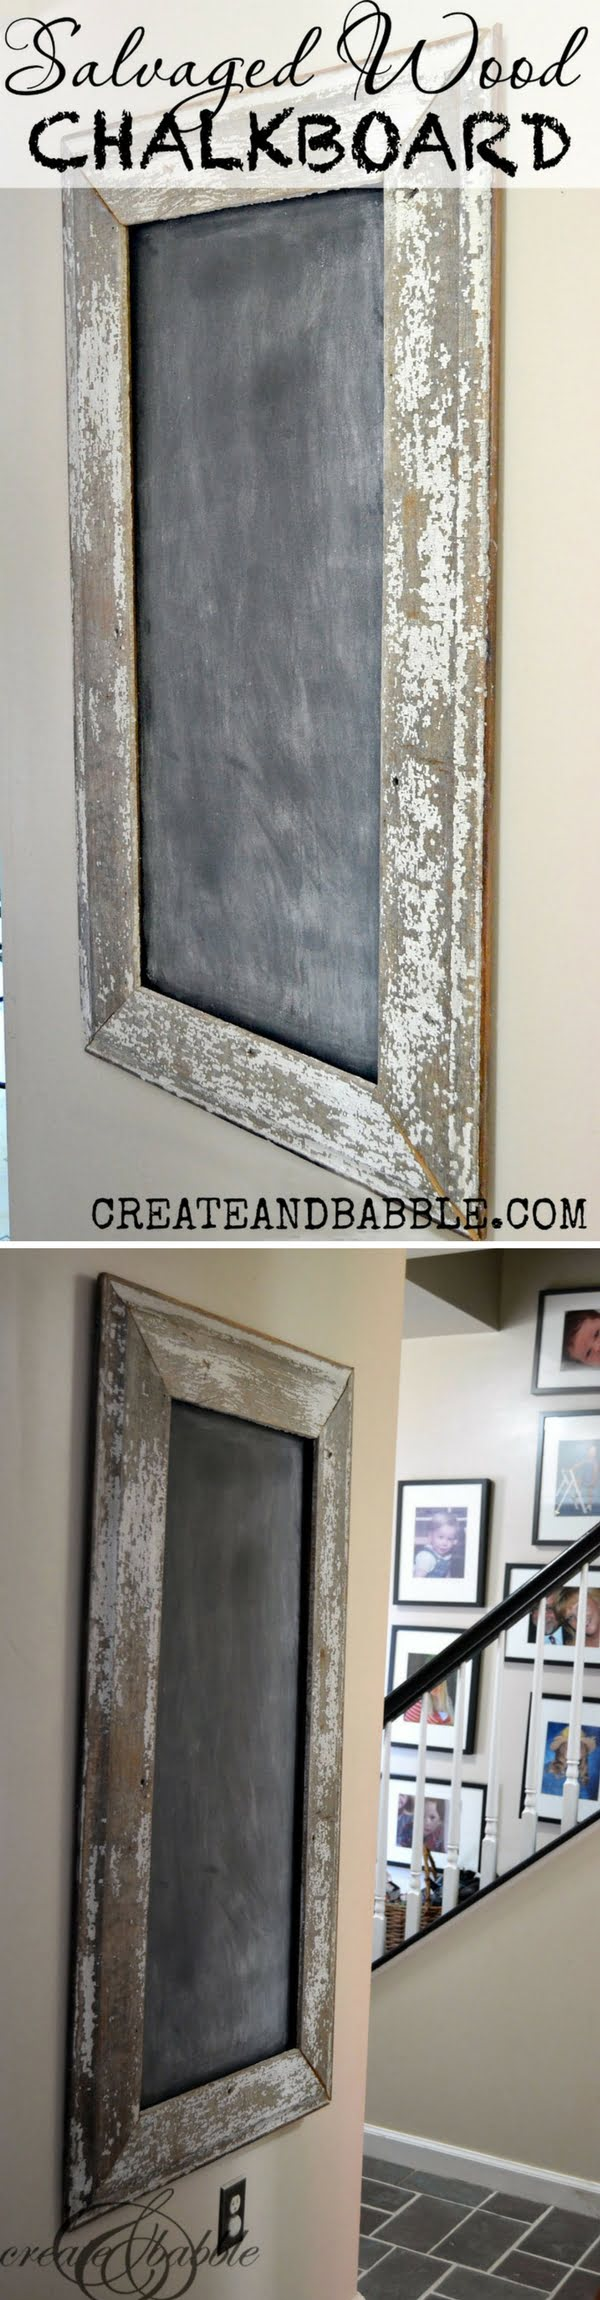 Check out this easy idea on how to make a #DIY salvaged #wood chalkboard #homedecor for #renters #project